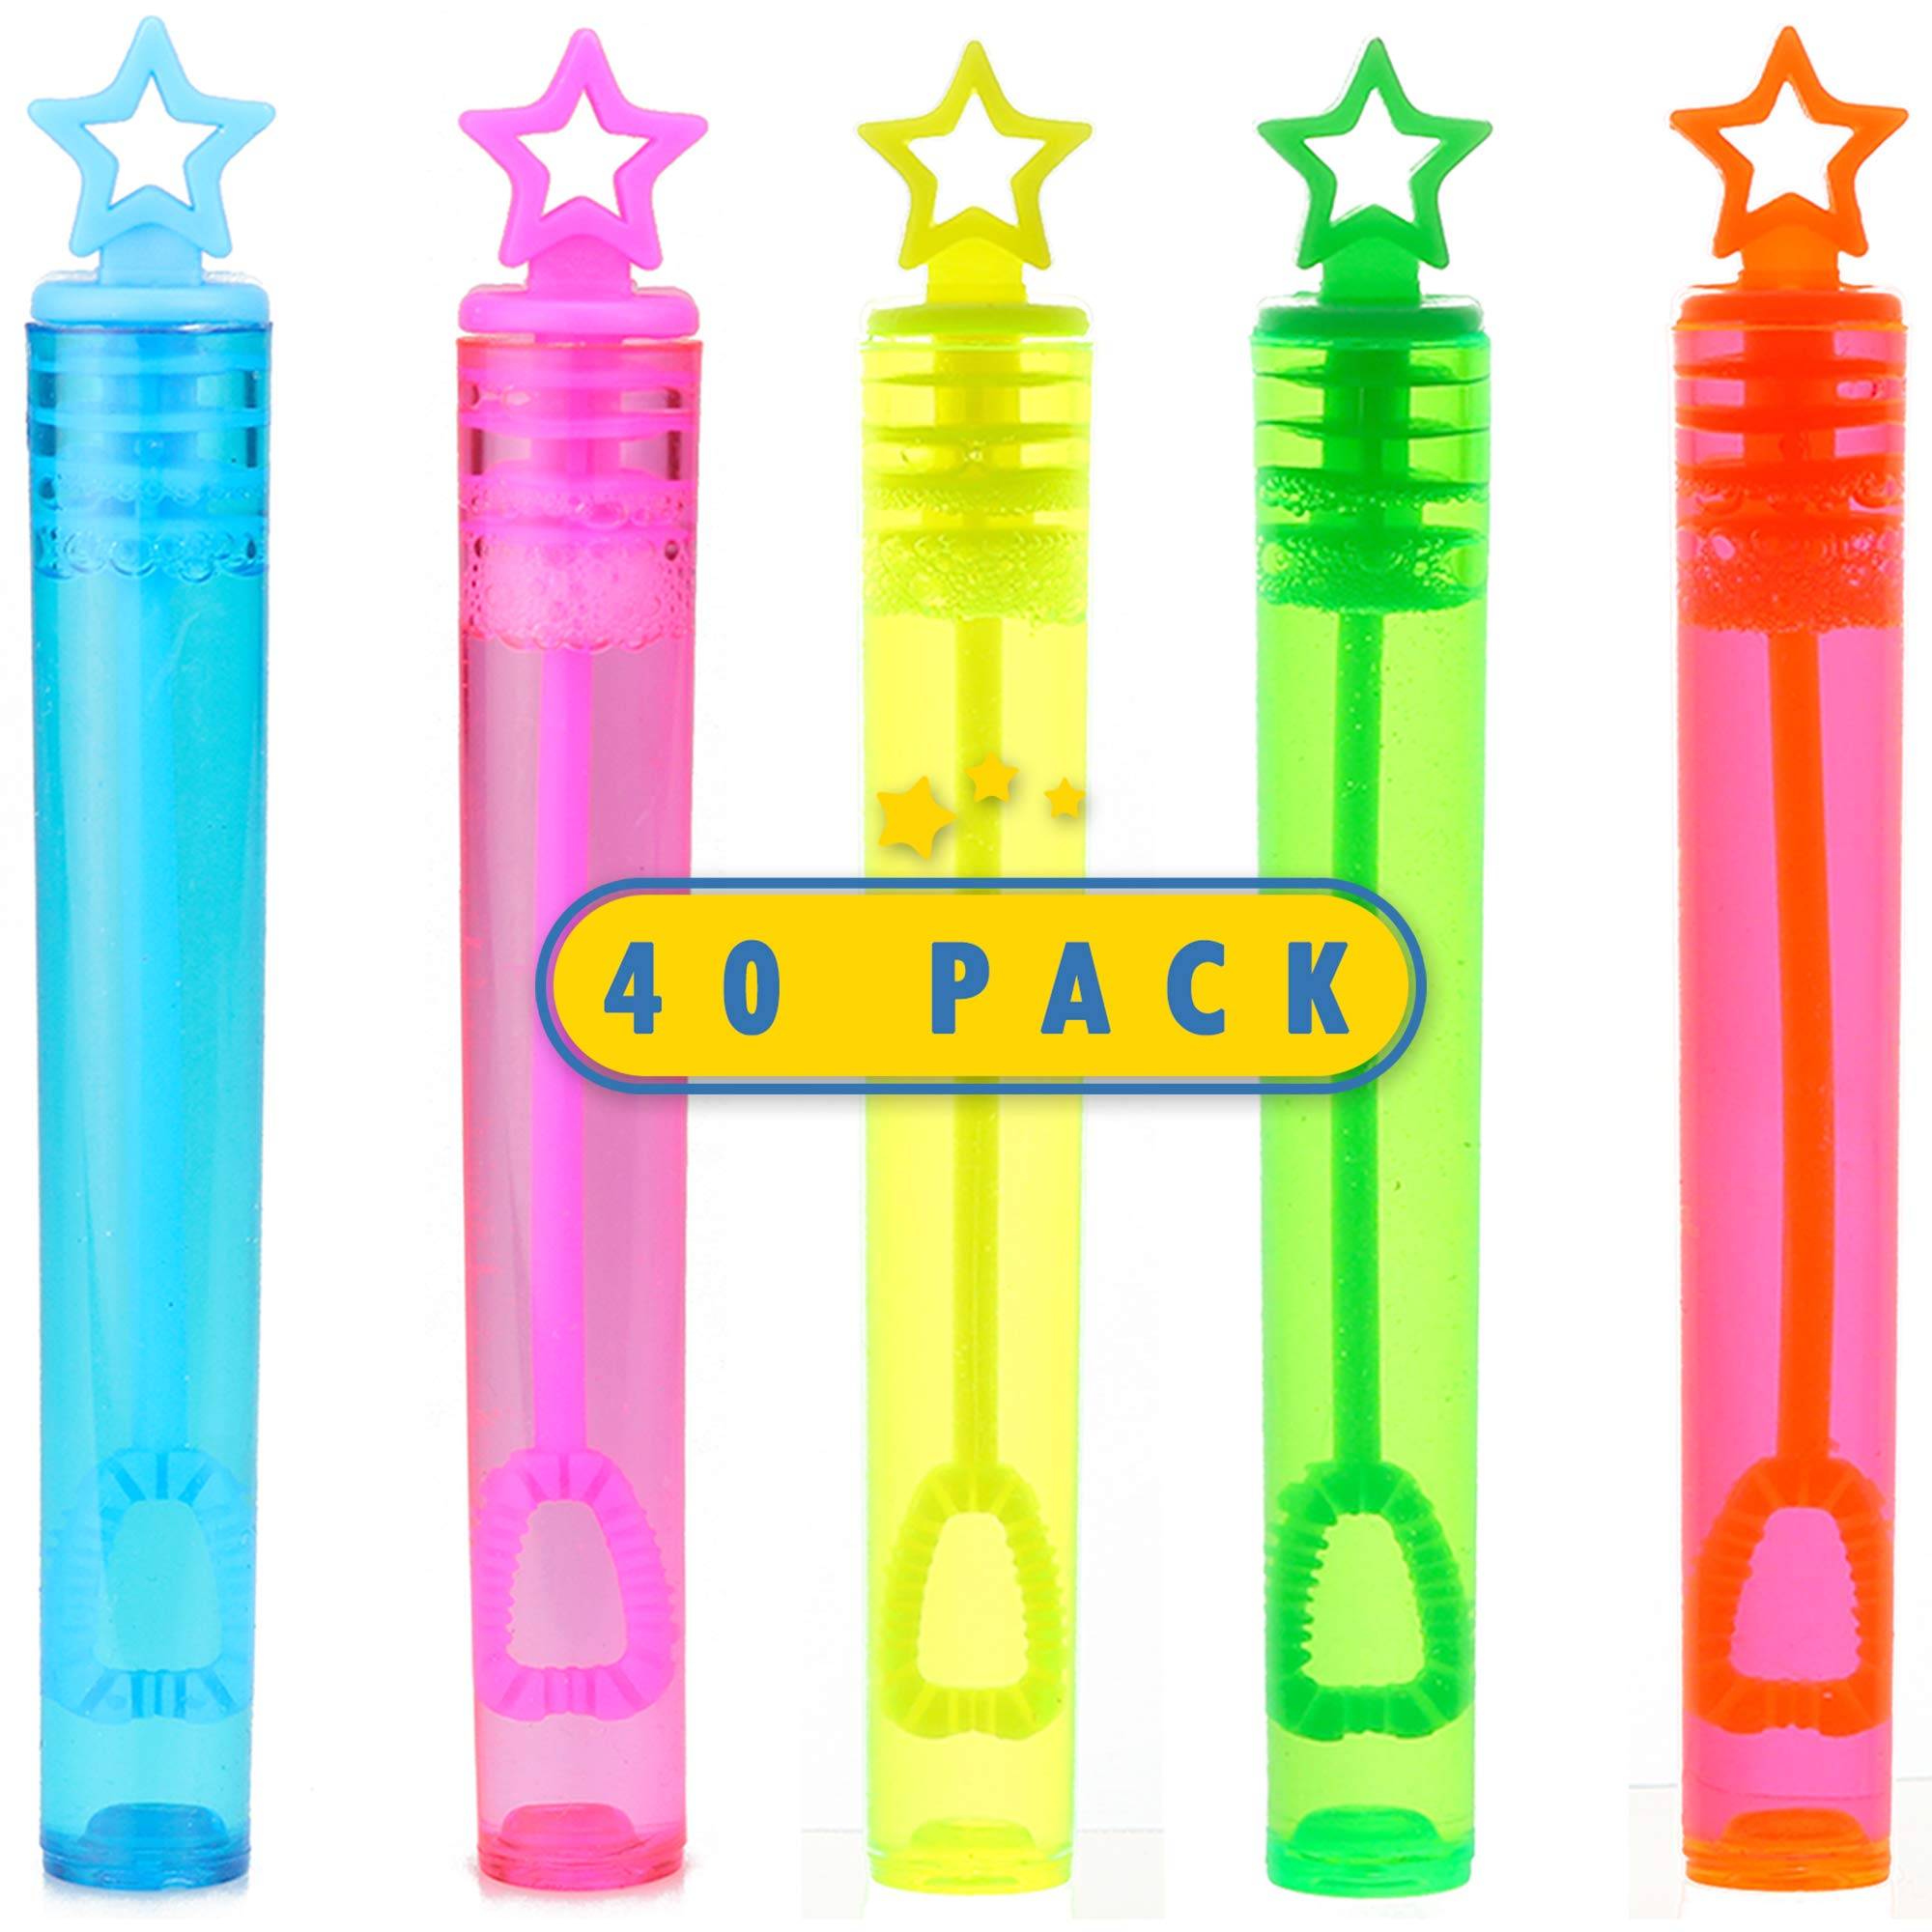 40-Piece Star Bubble Wands Assortment Neon Party Favors - Summer Gifts Bubbles Fun Toys